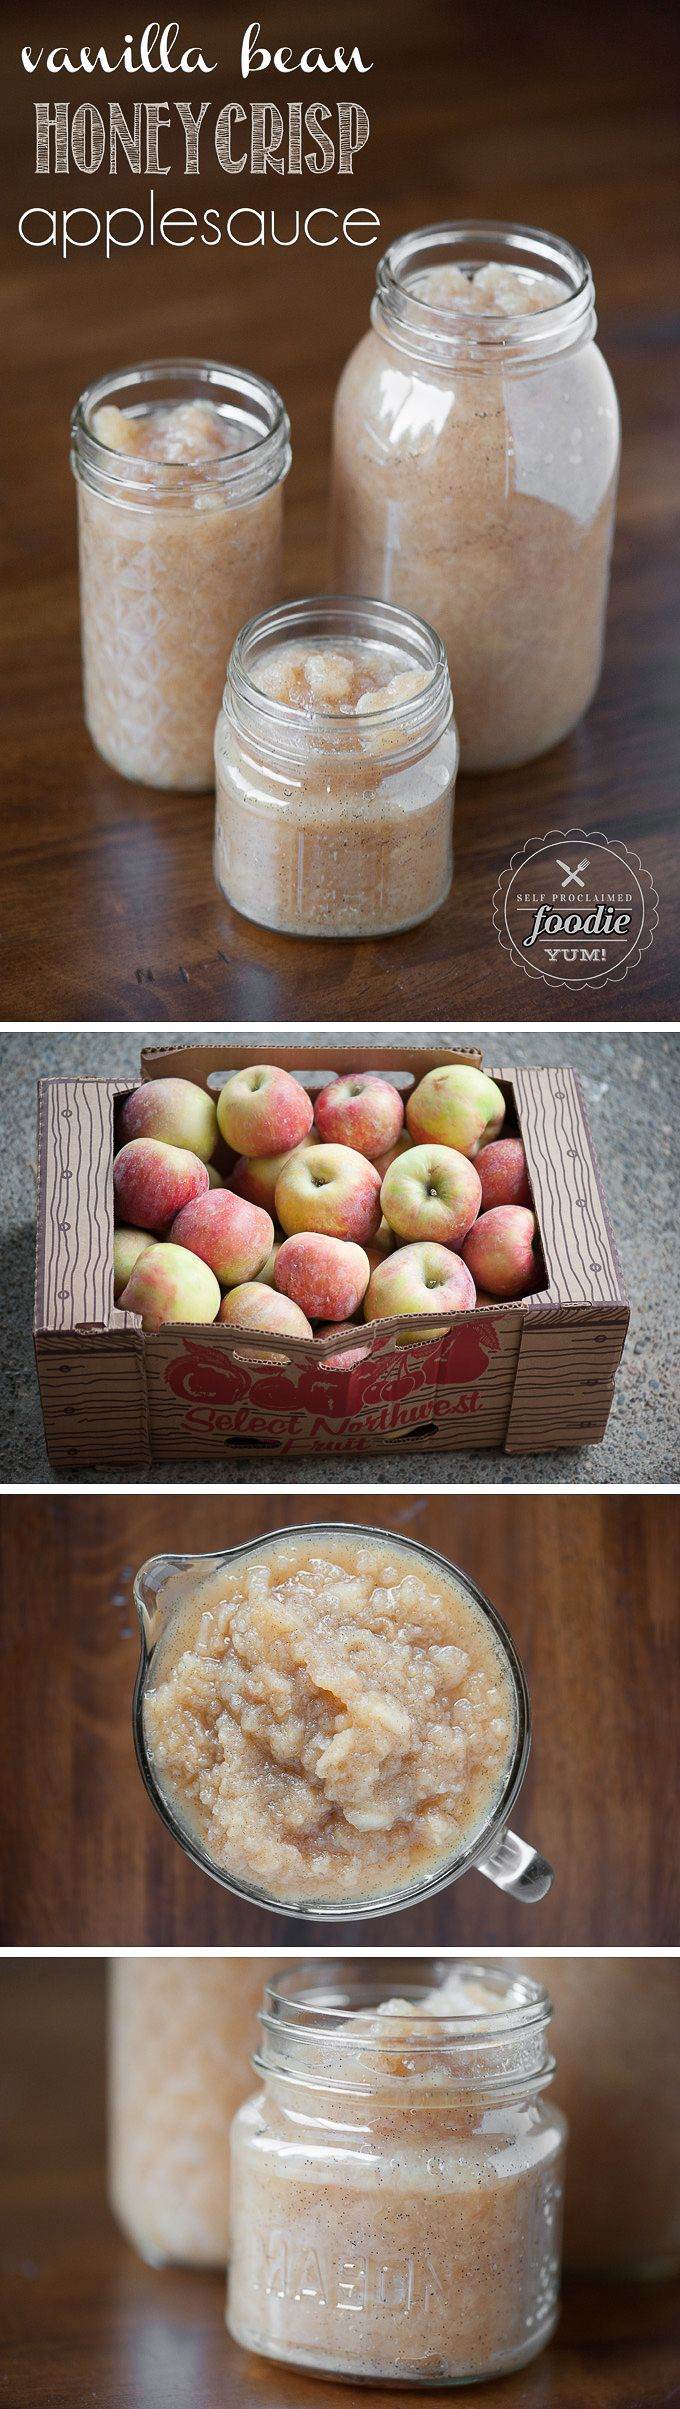 This Vanilla Bean Honeycrisp Applesauce recipe makes by far the best applesauce you will ever eat, and its so sweet you won't believe its made without sugar!